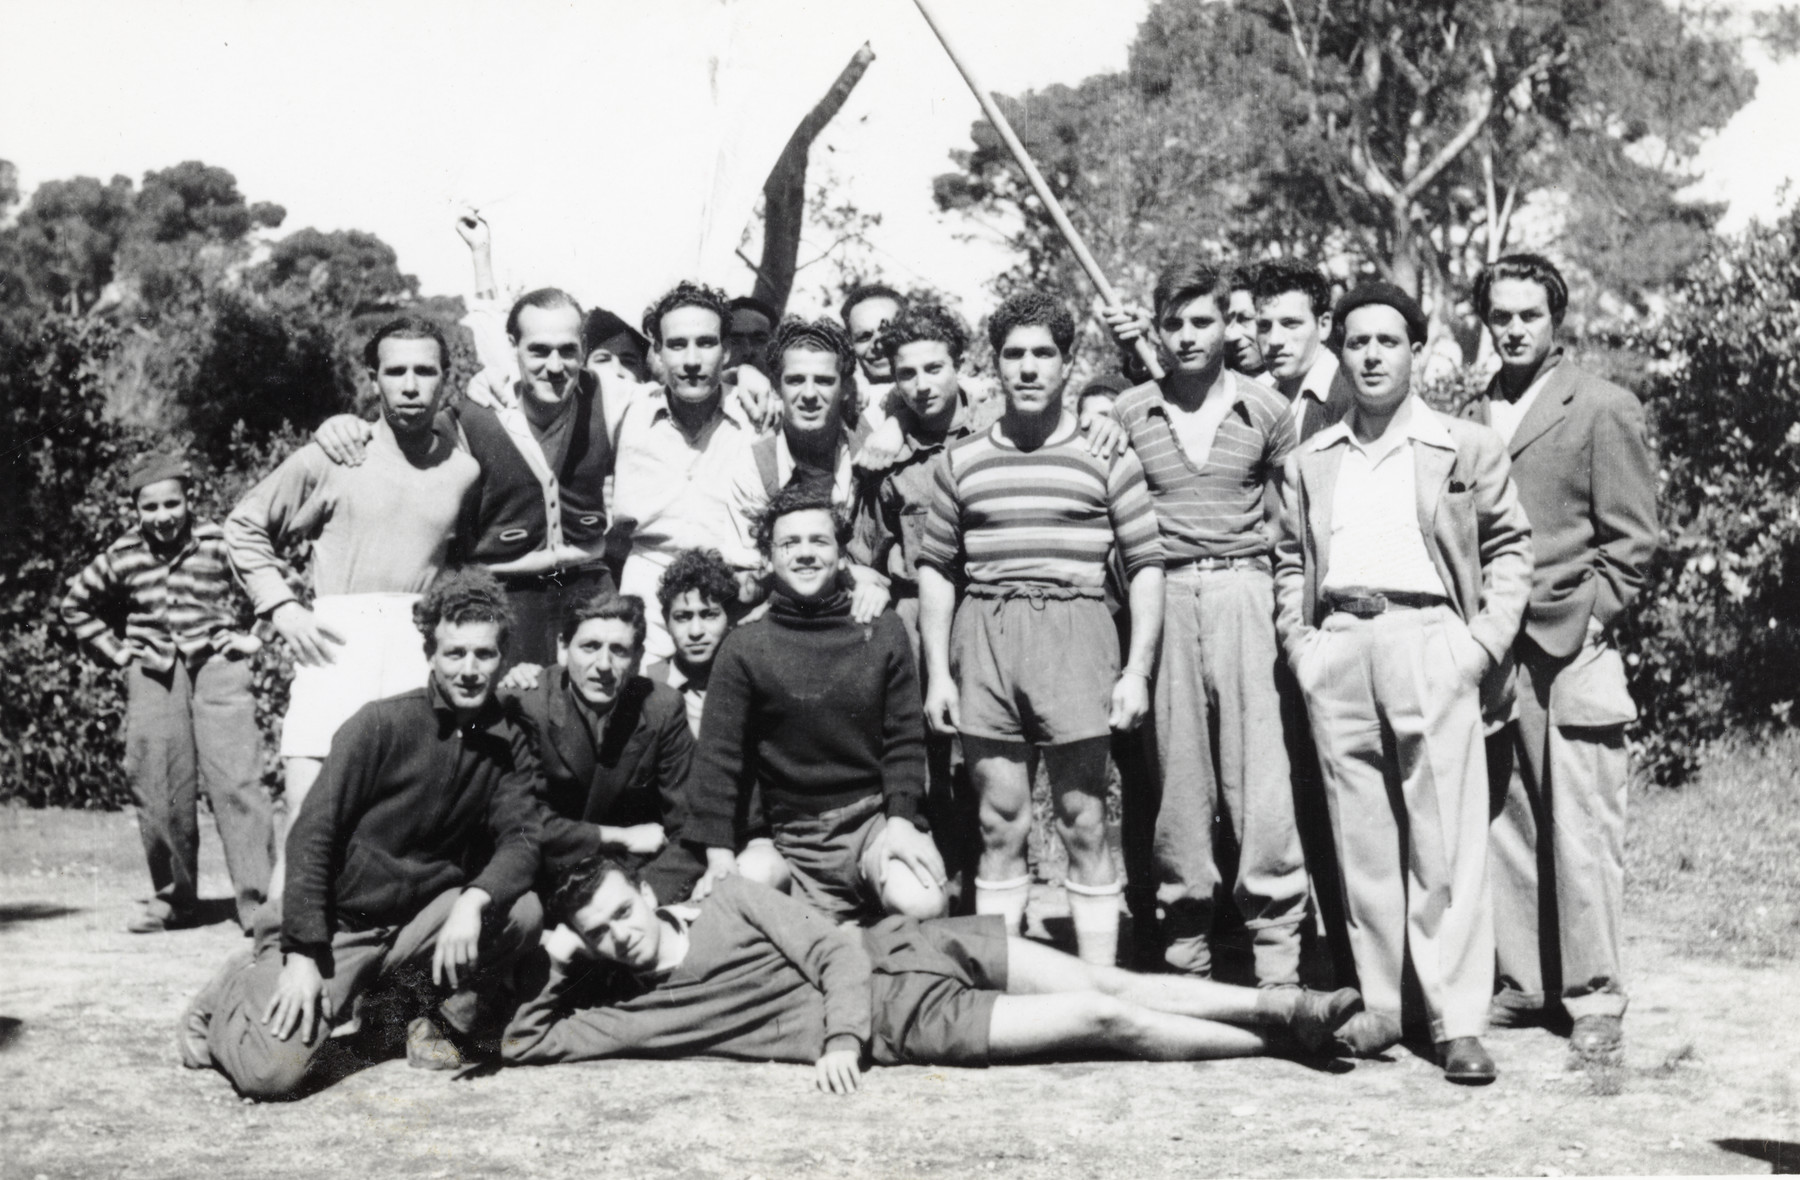 Immigrants from North Africa in Mahane David, an immigration camp for North African Jews en route to Israel.   Shimon Sousson is in the first row (second from the right) with his hands in his pockets.